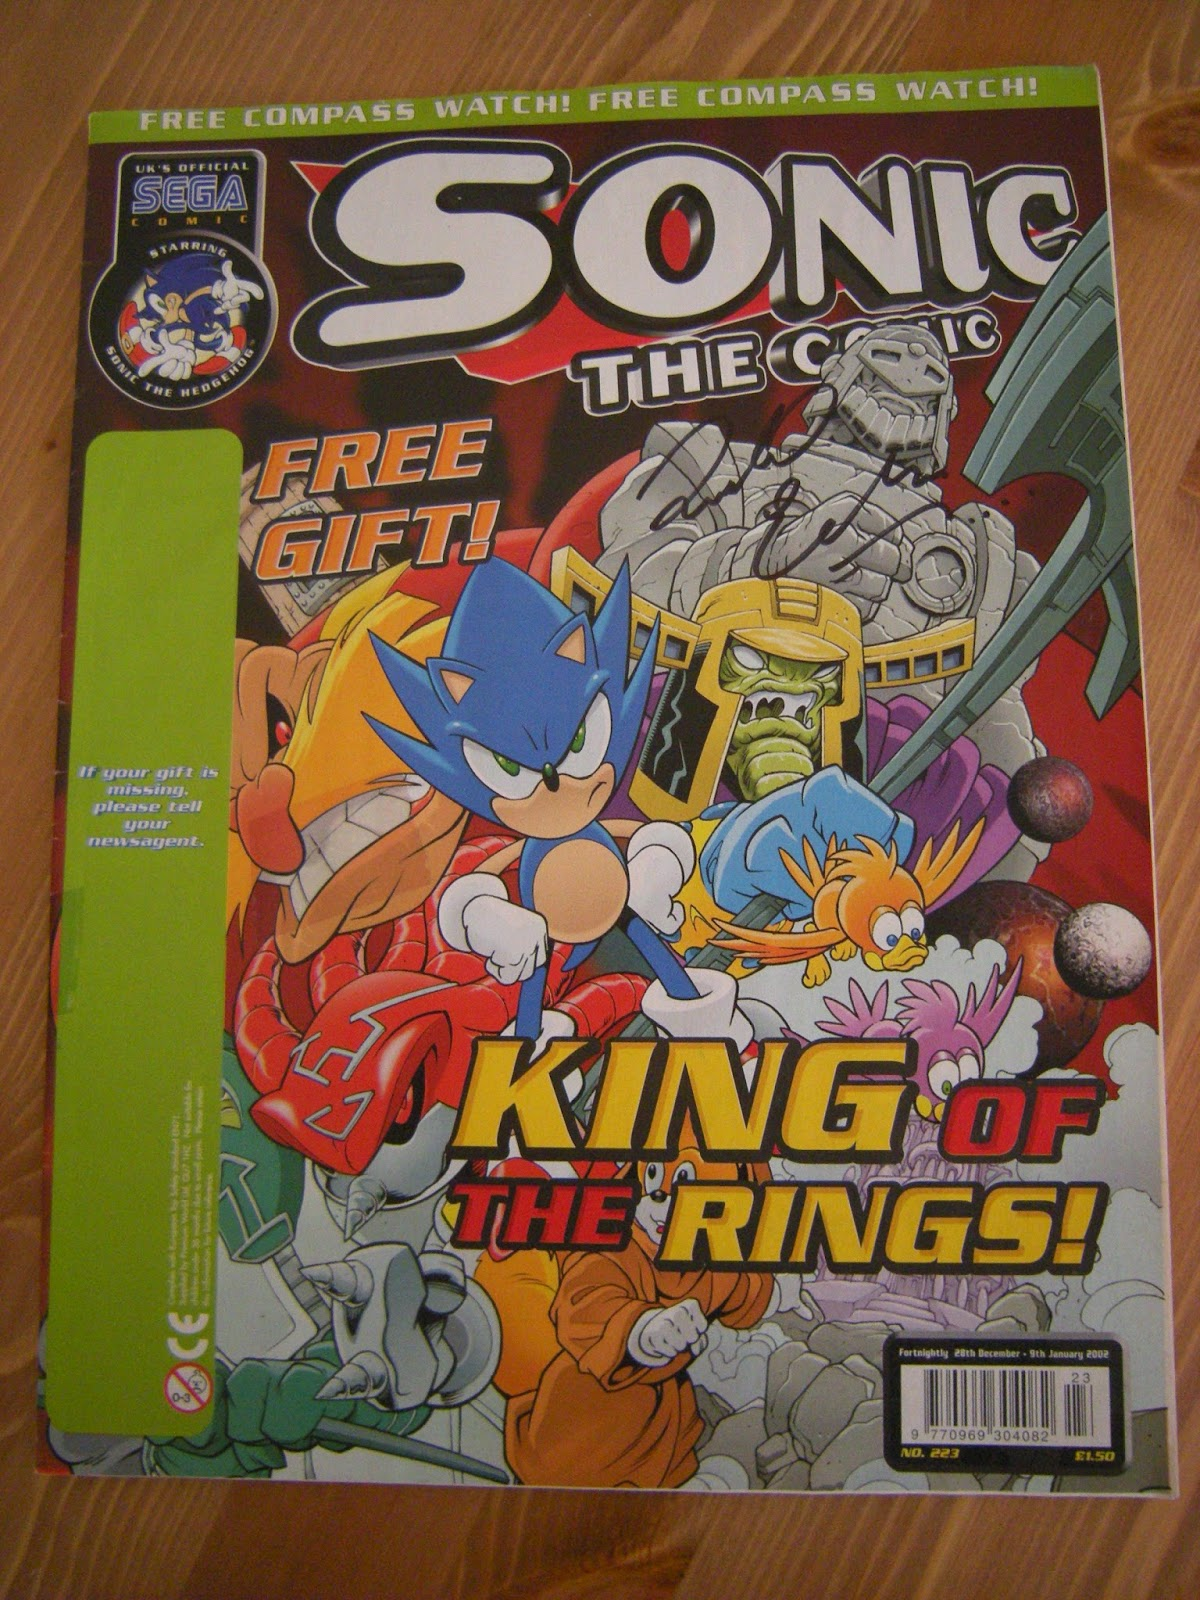 King of the rings, the final issue